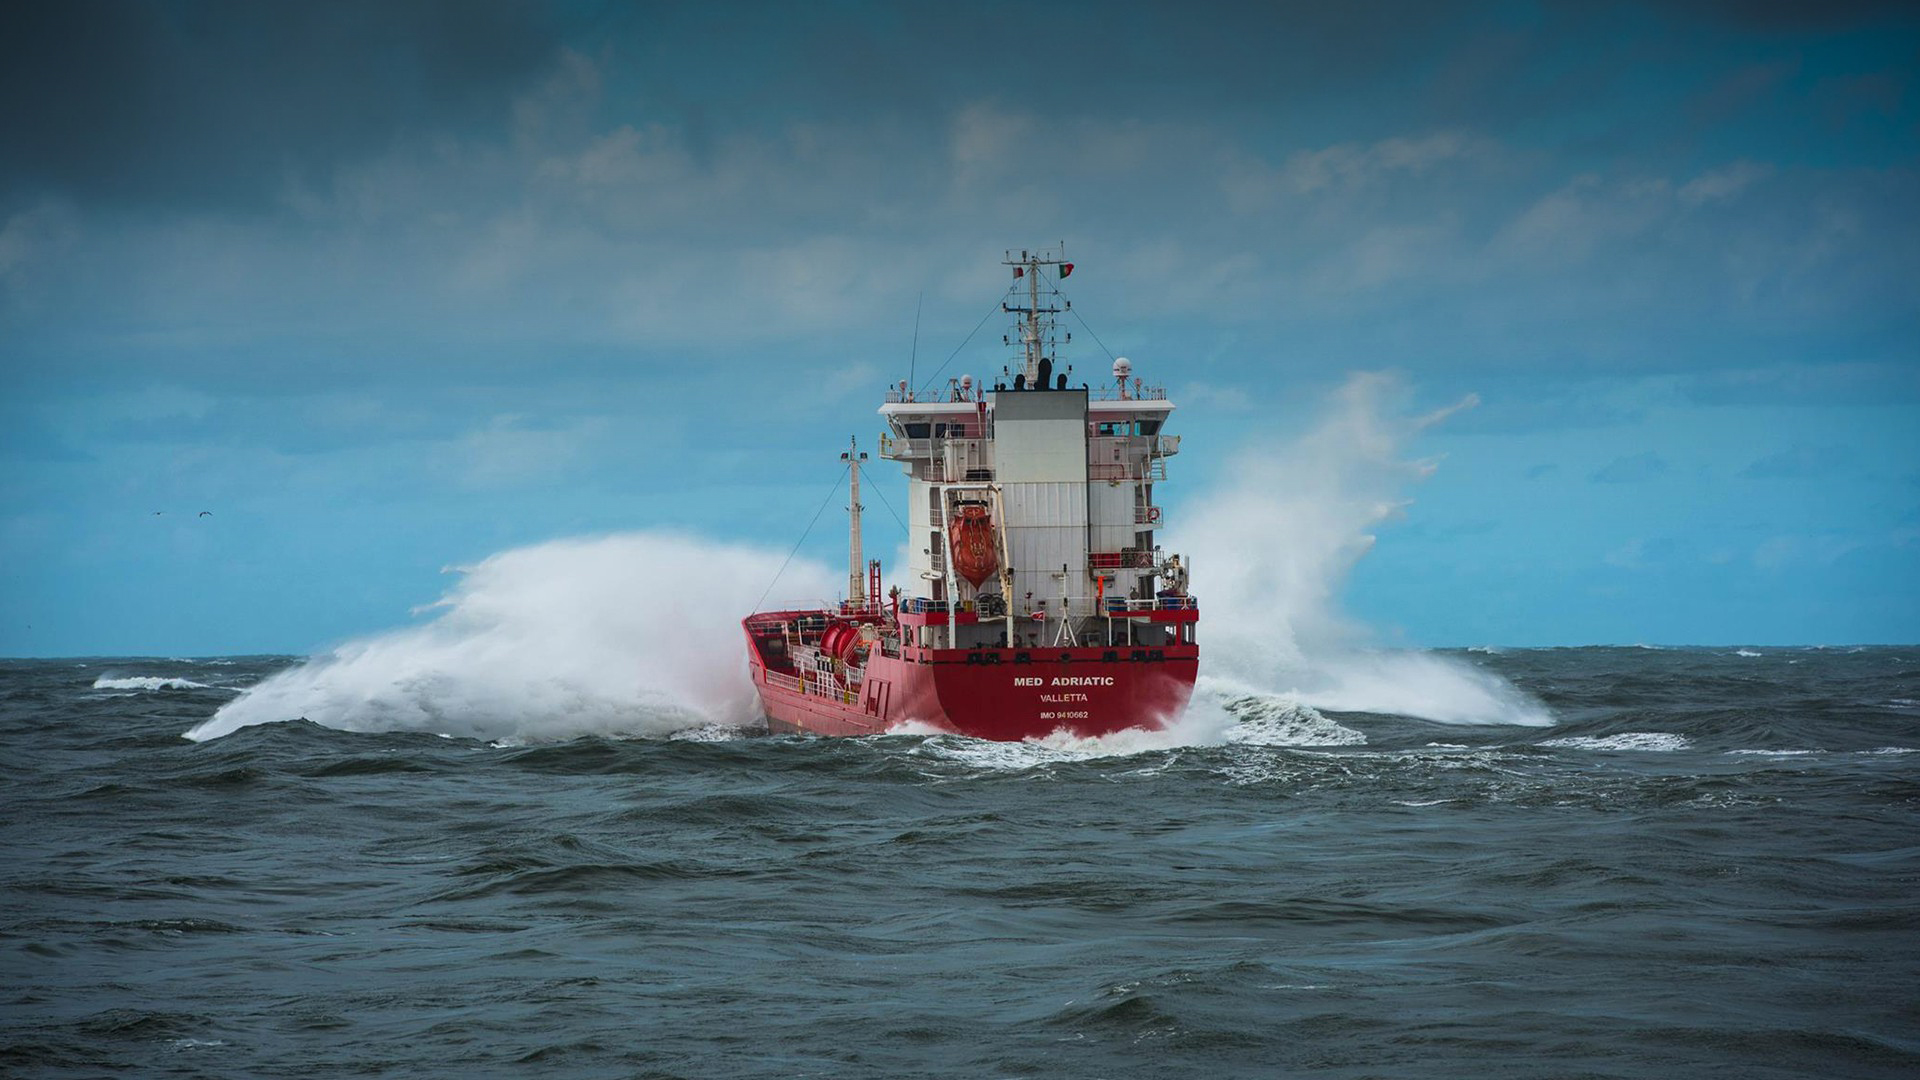 <small2>Committed to provide safe, efficient, reliable and environmentally responsible ocean transportation.</small2>